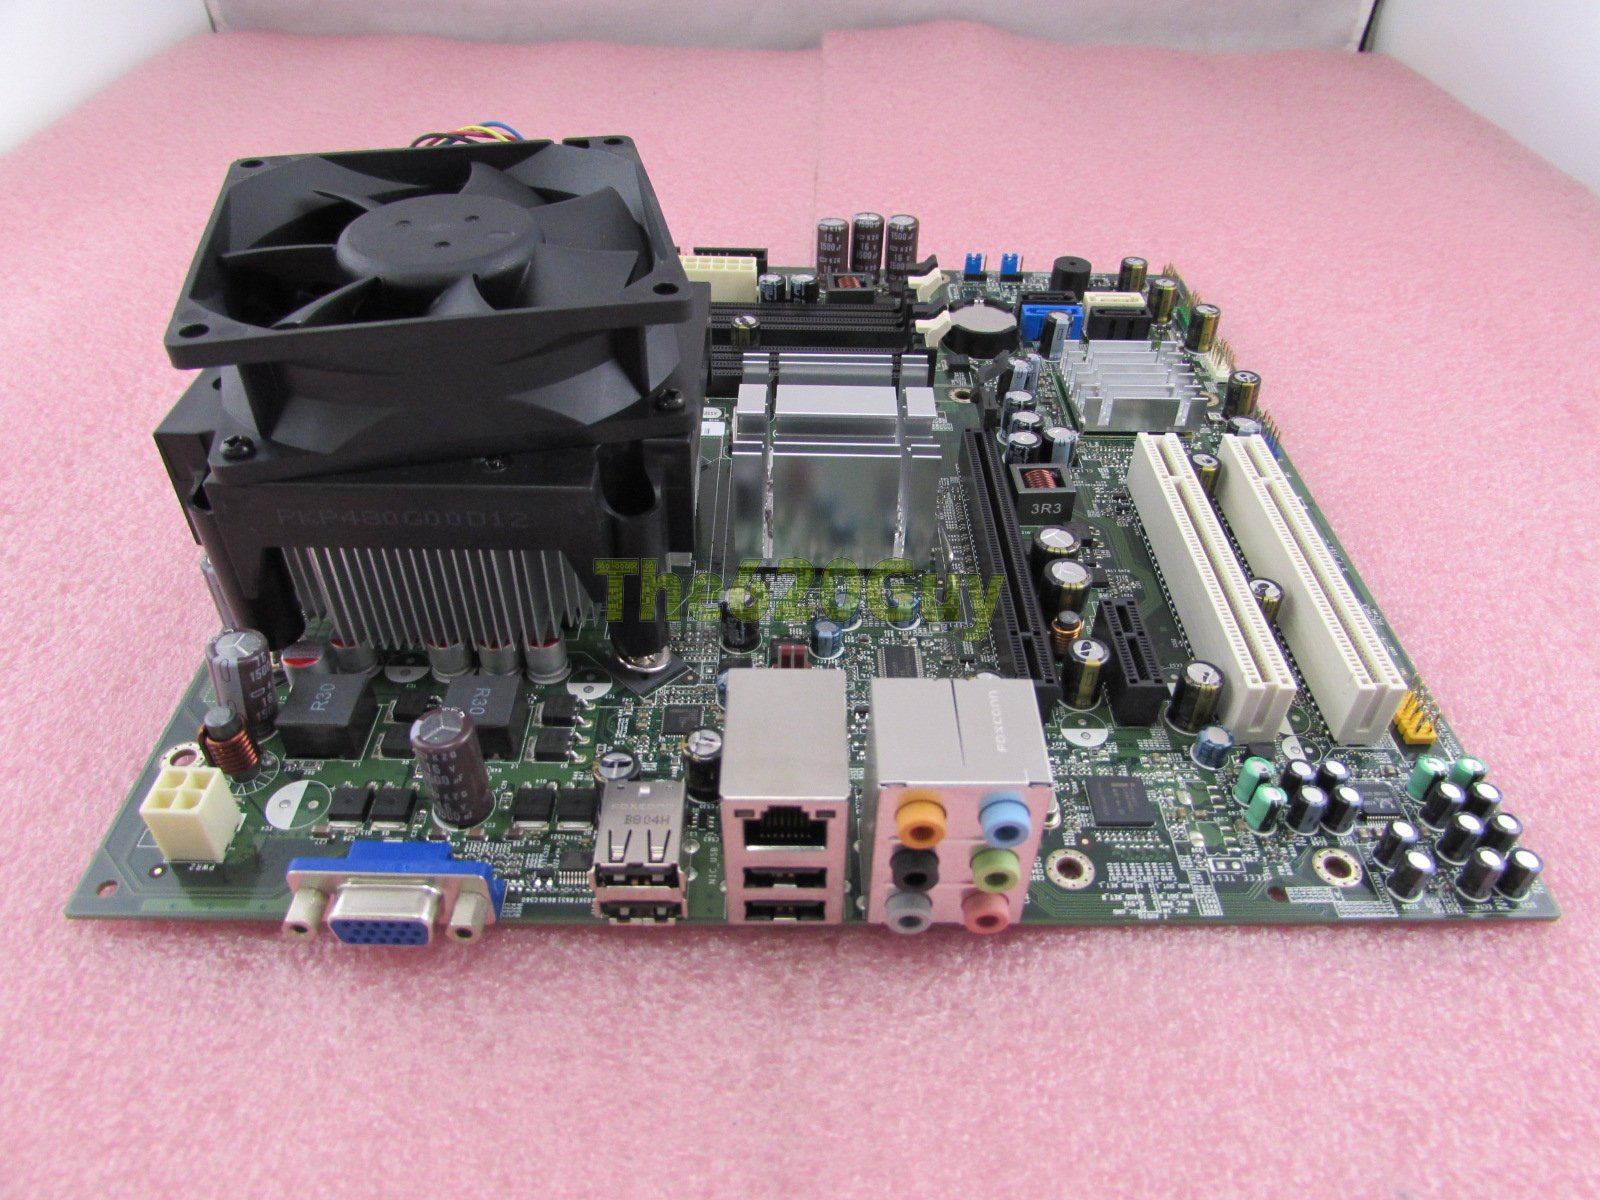 dell xps 8500 motherboard diagram ba falcon coil wiring upgrade photos and images